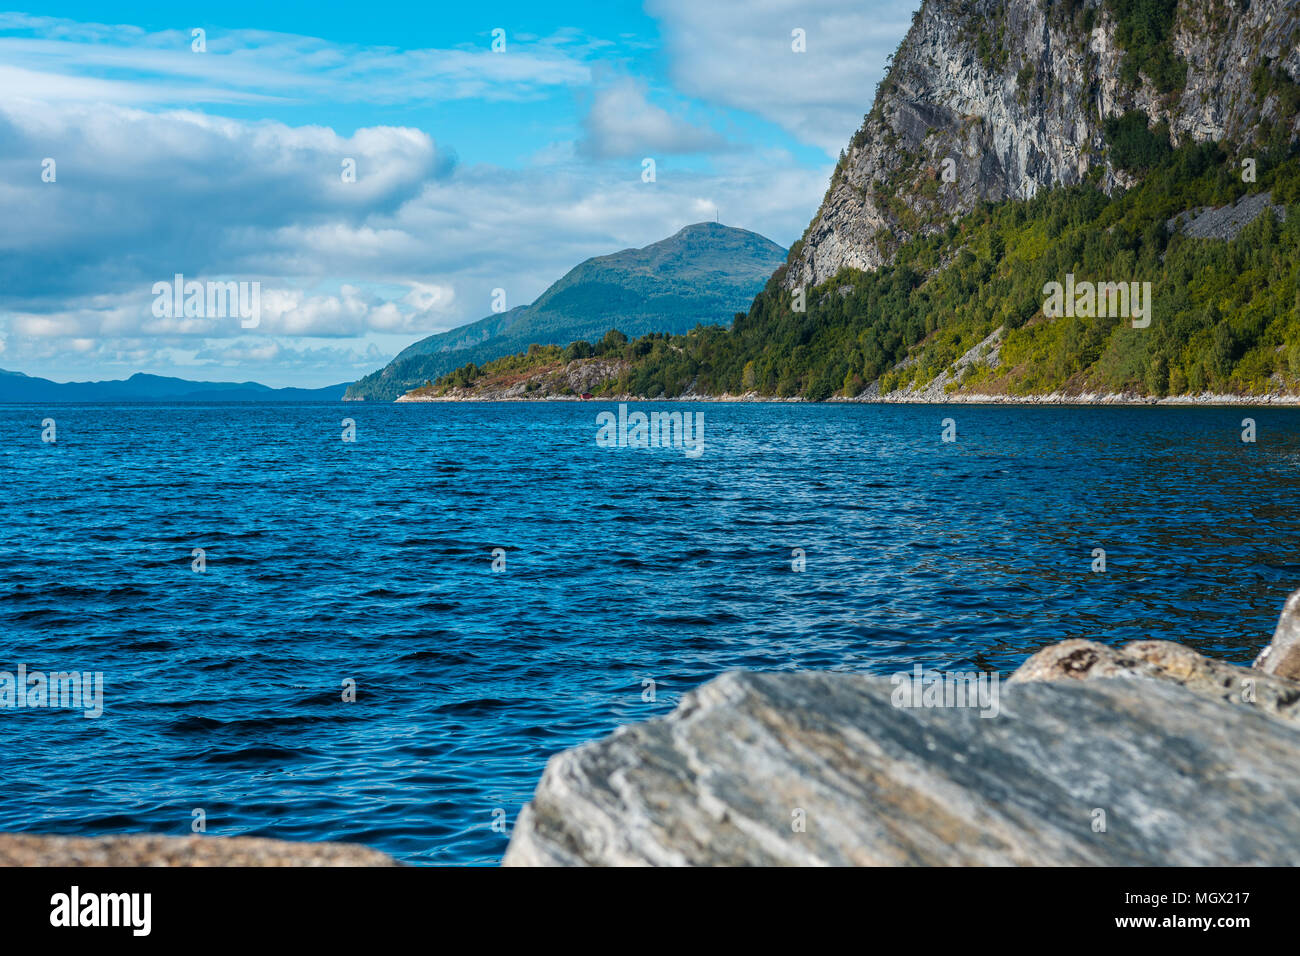 Fjord with mountains landscape (volda, norway) - Stock Image